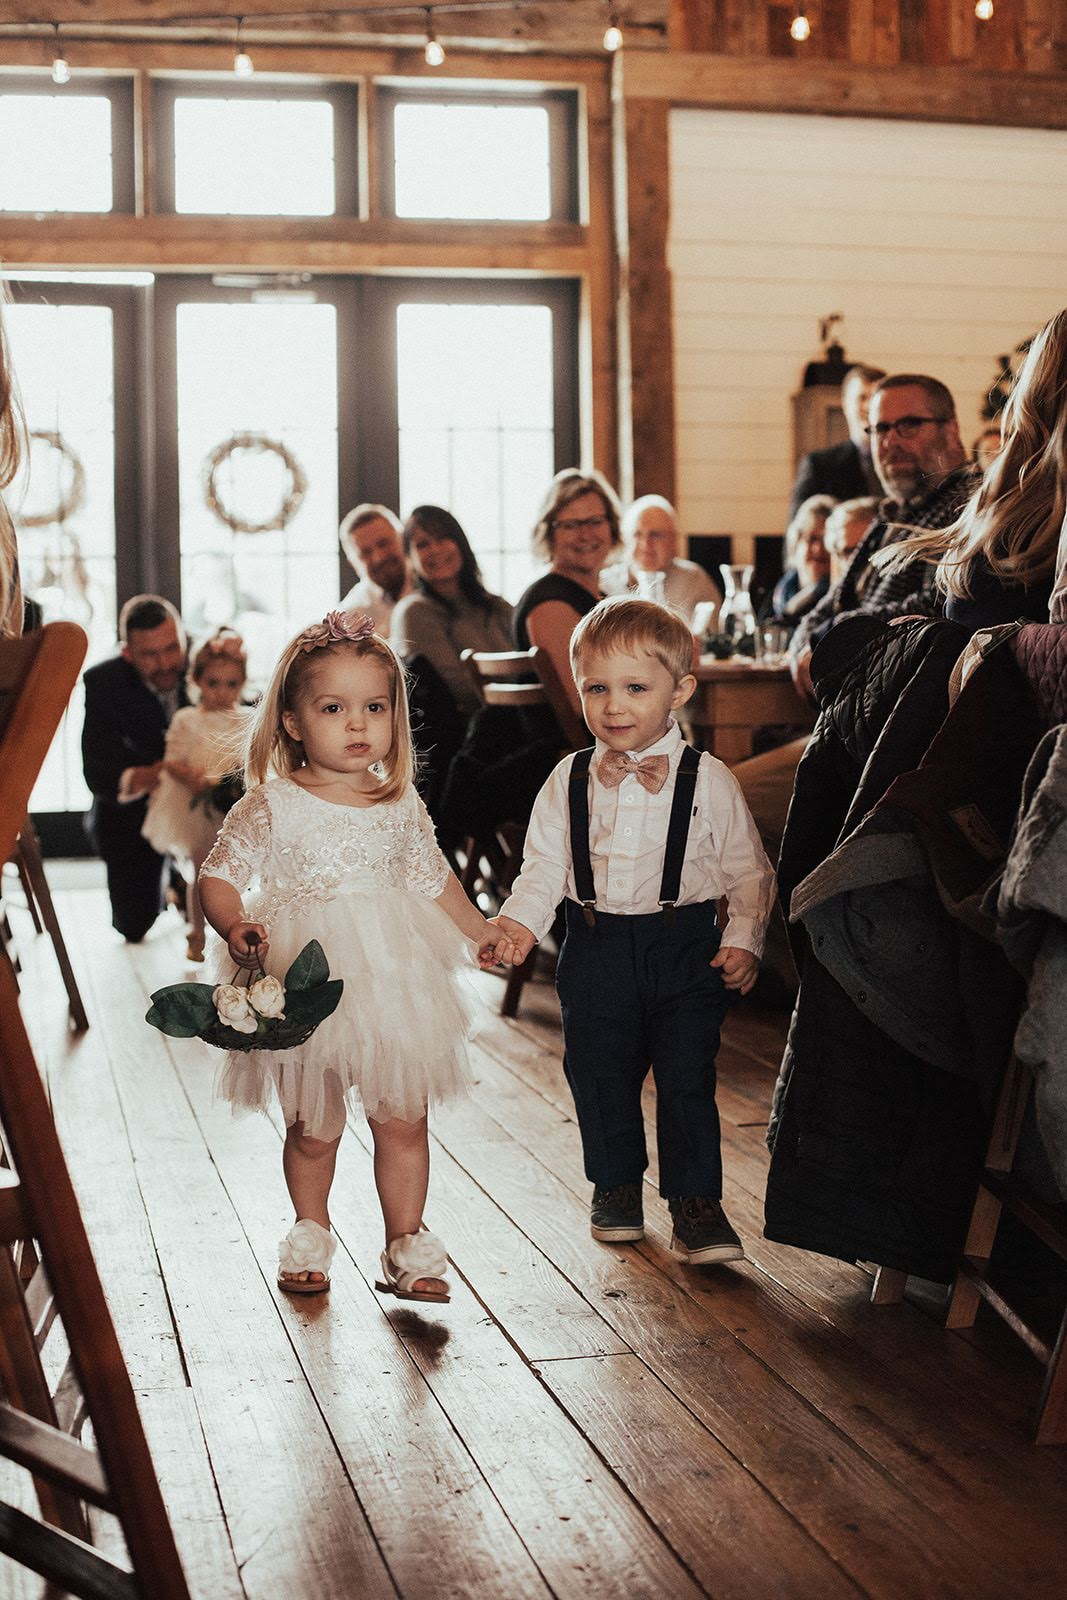 How cute are these little ones?! They did such a great job walking down the aisle!